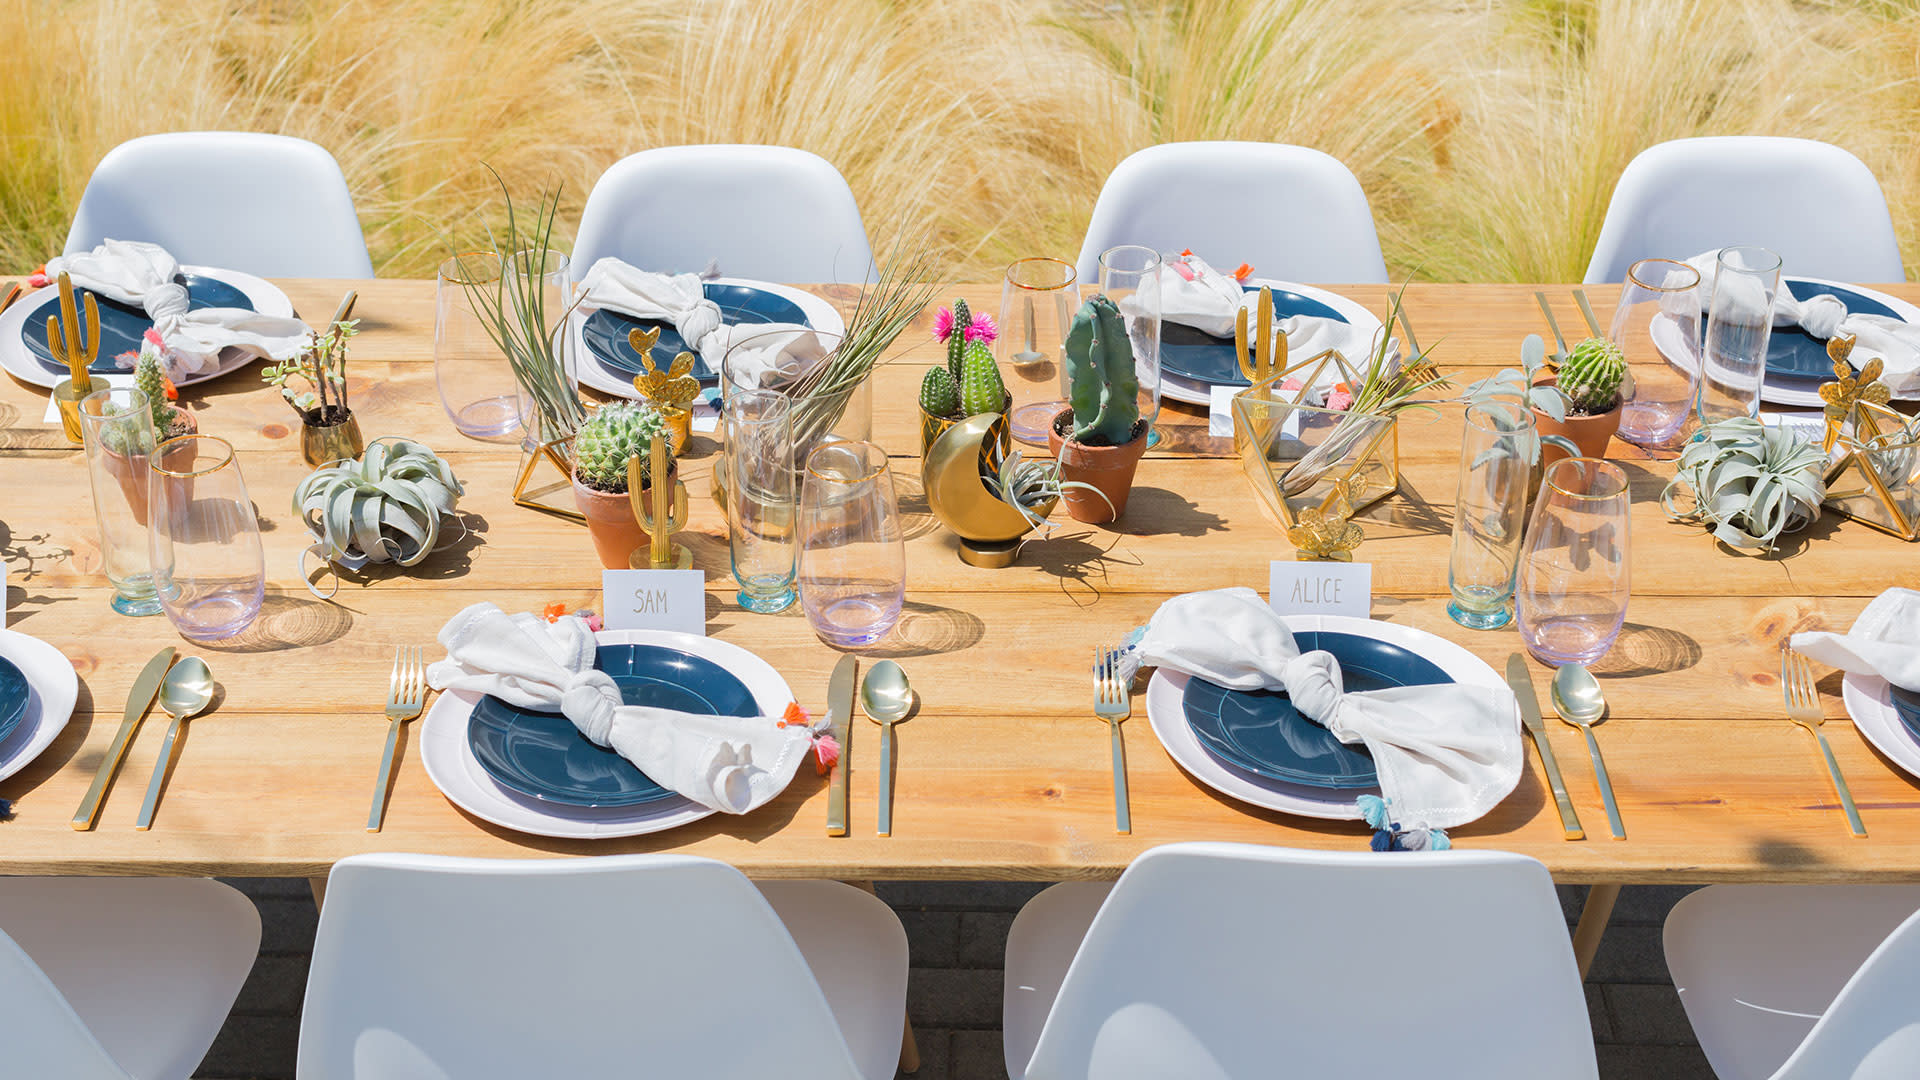 greater palm springs birthday party place setting